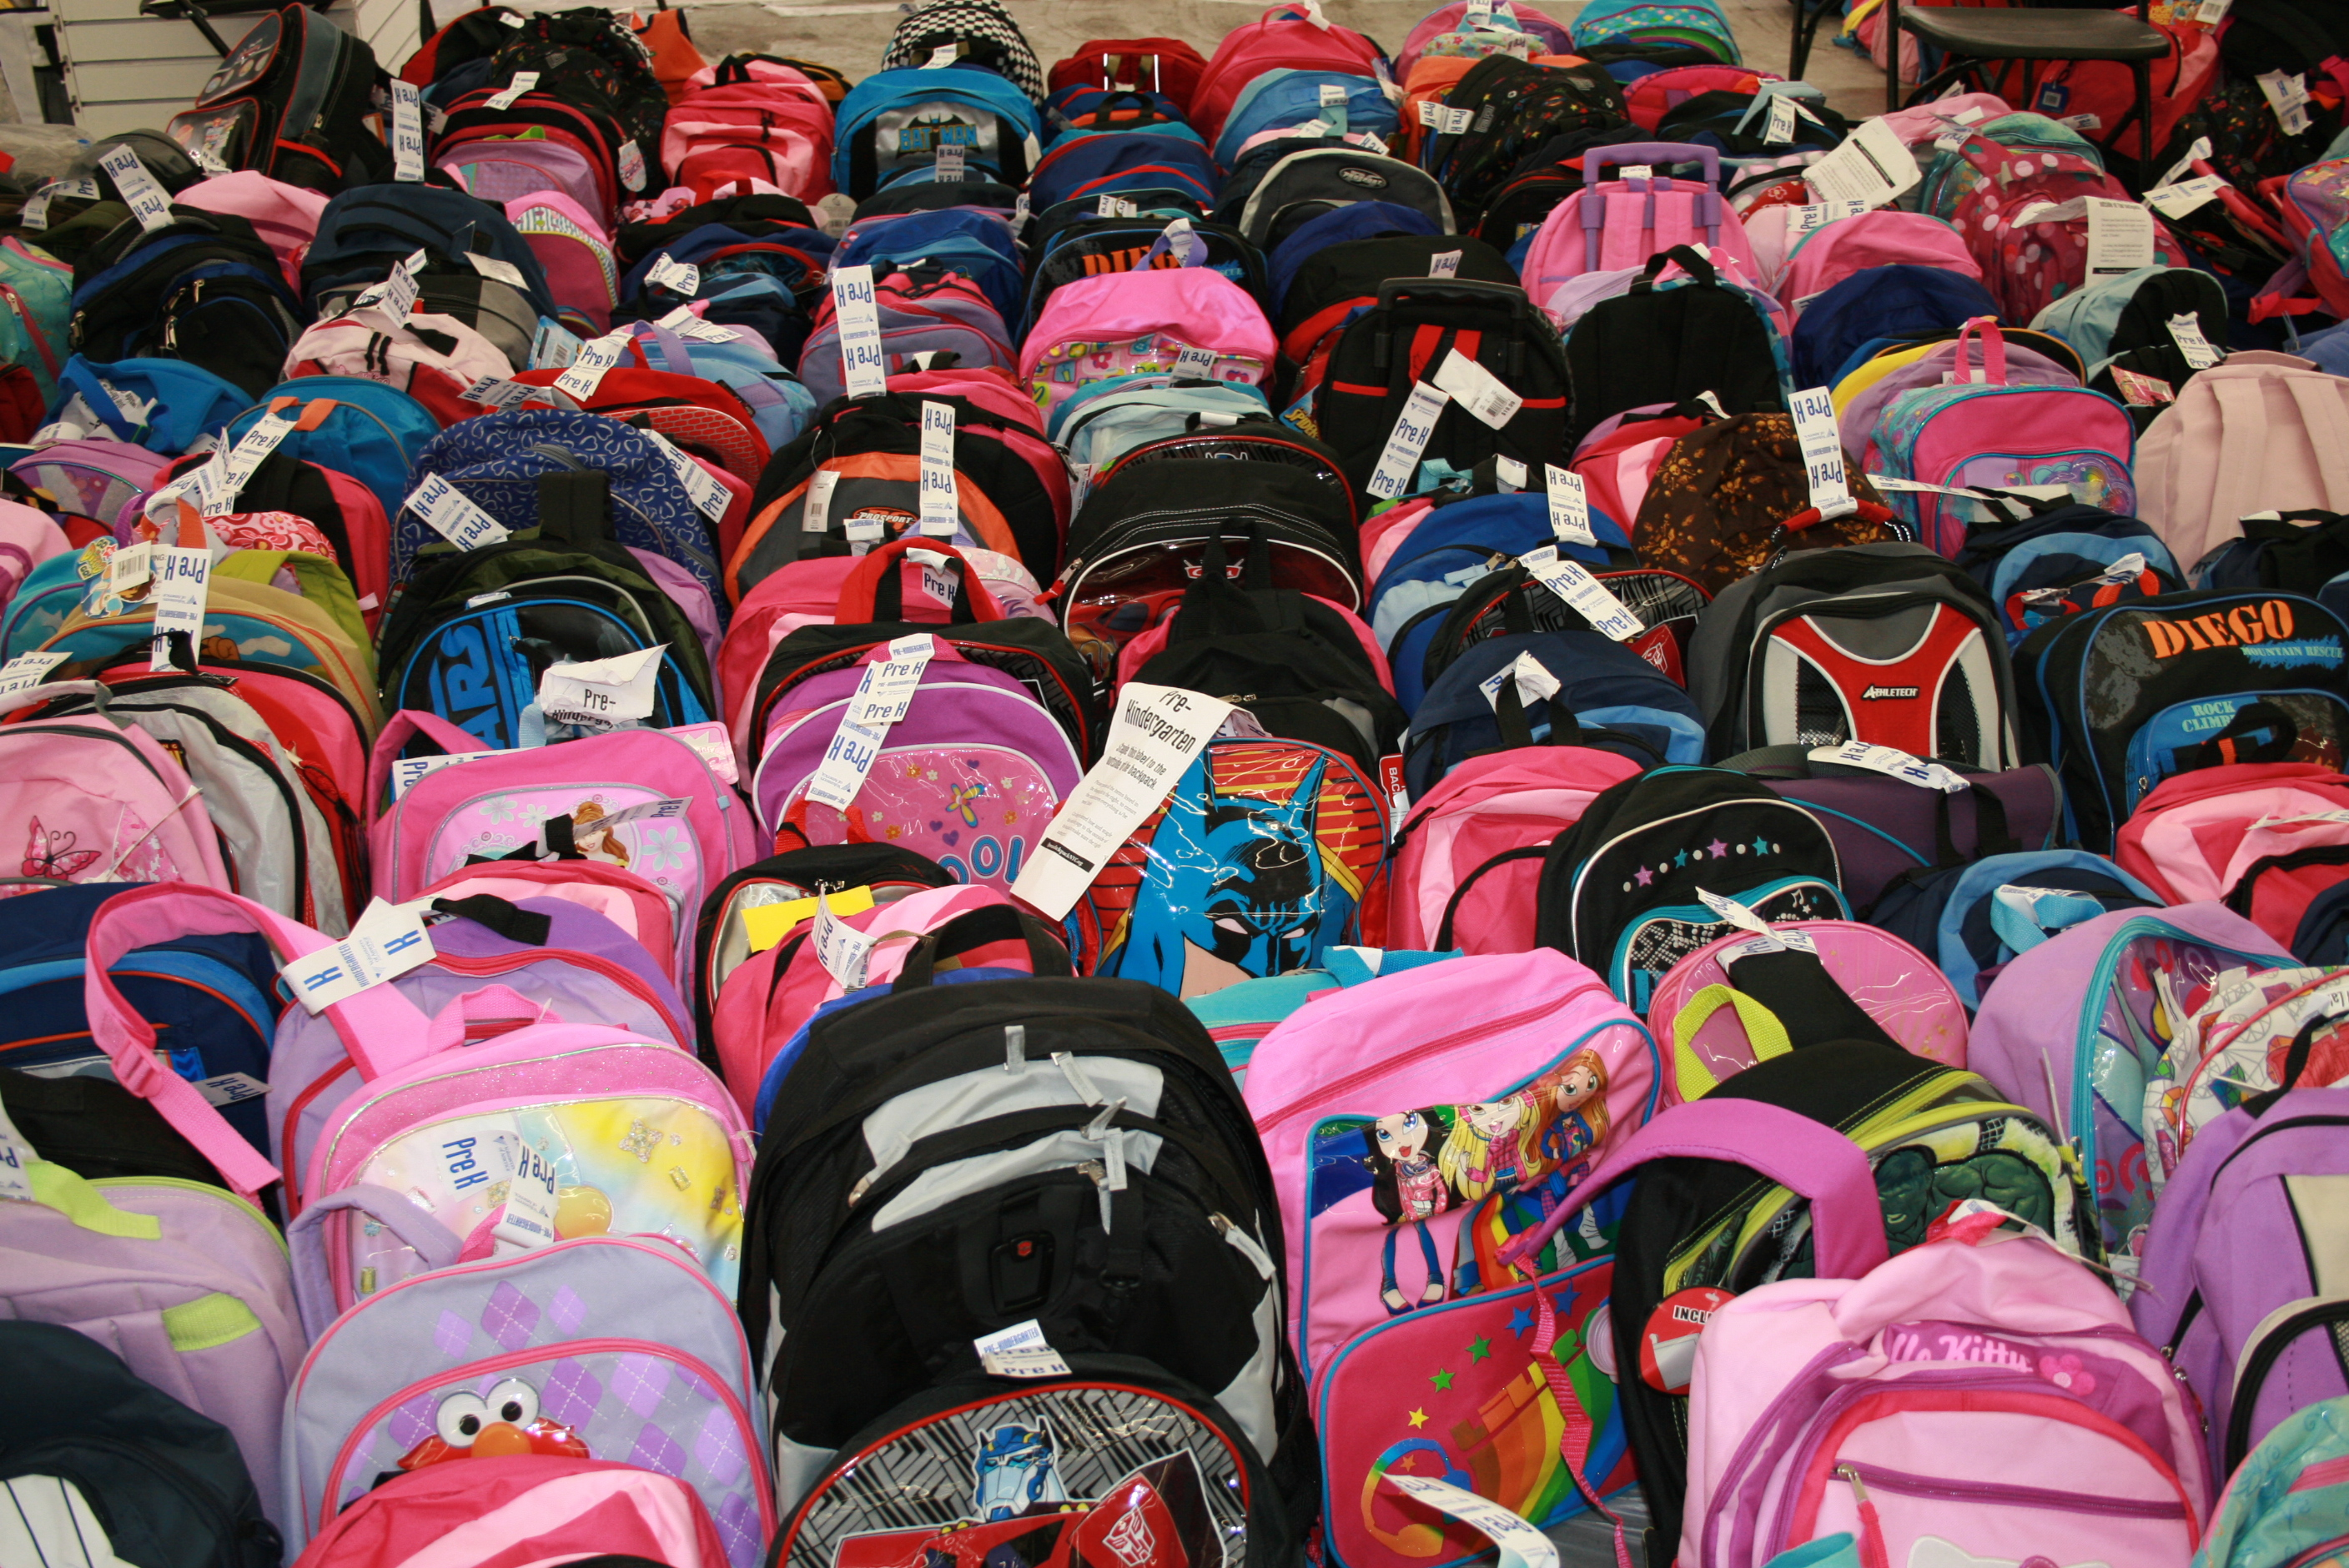 VOA-Operation Backpack 2015